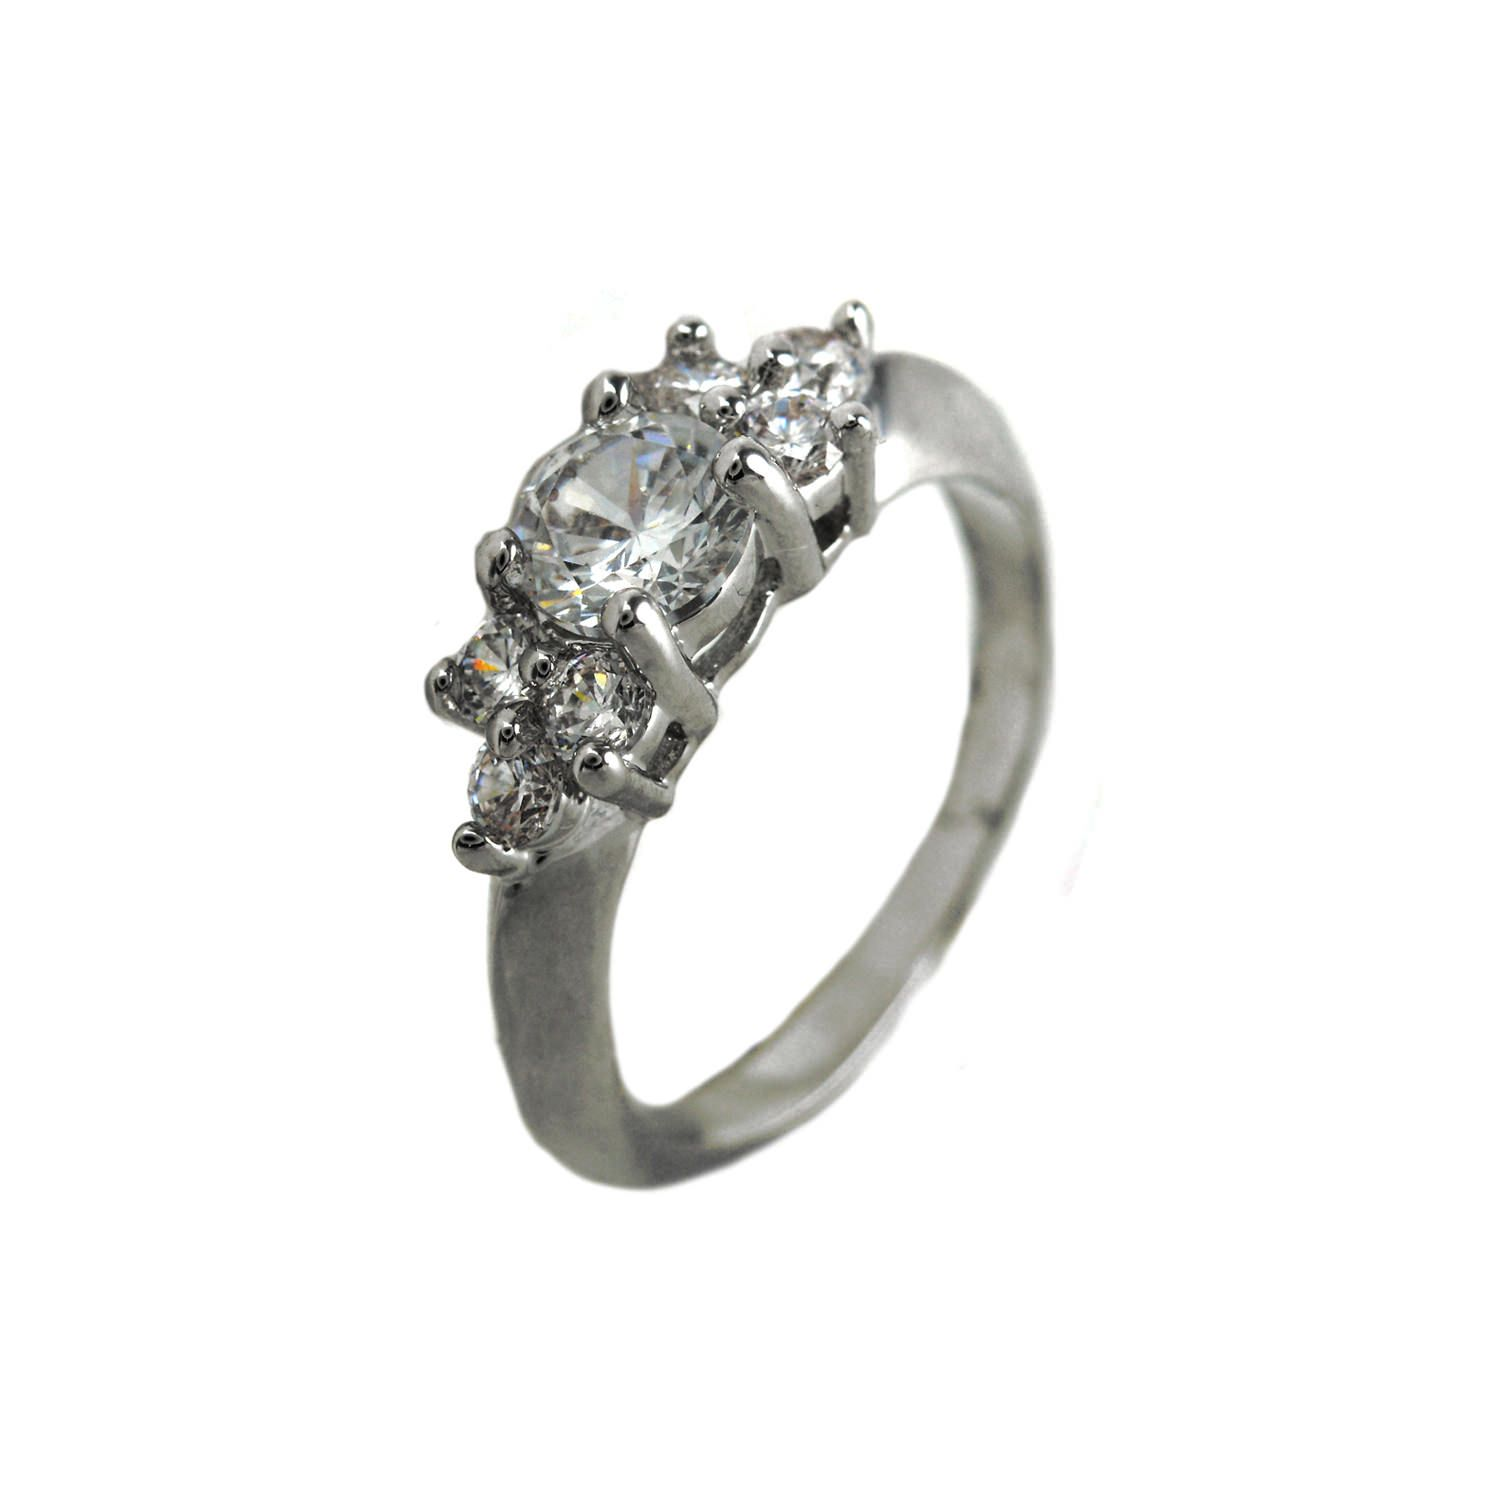 Engagement ring with multiple adjoining CZ stones. Sizes 5-9. Item #: r2763